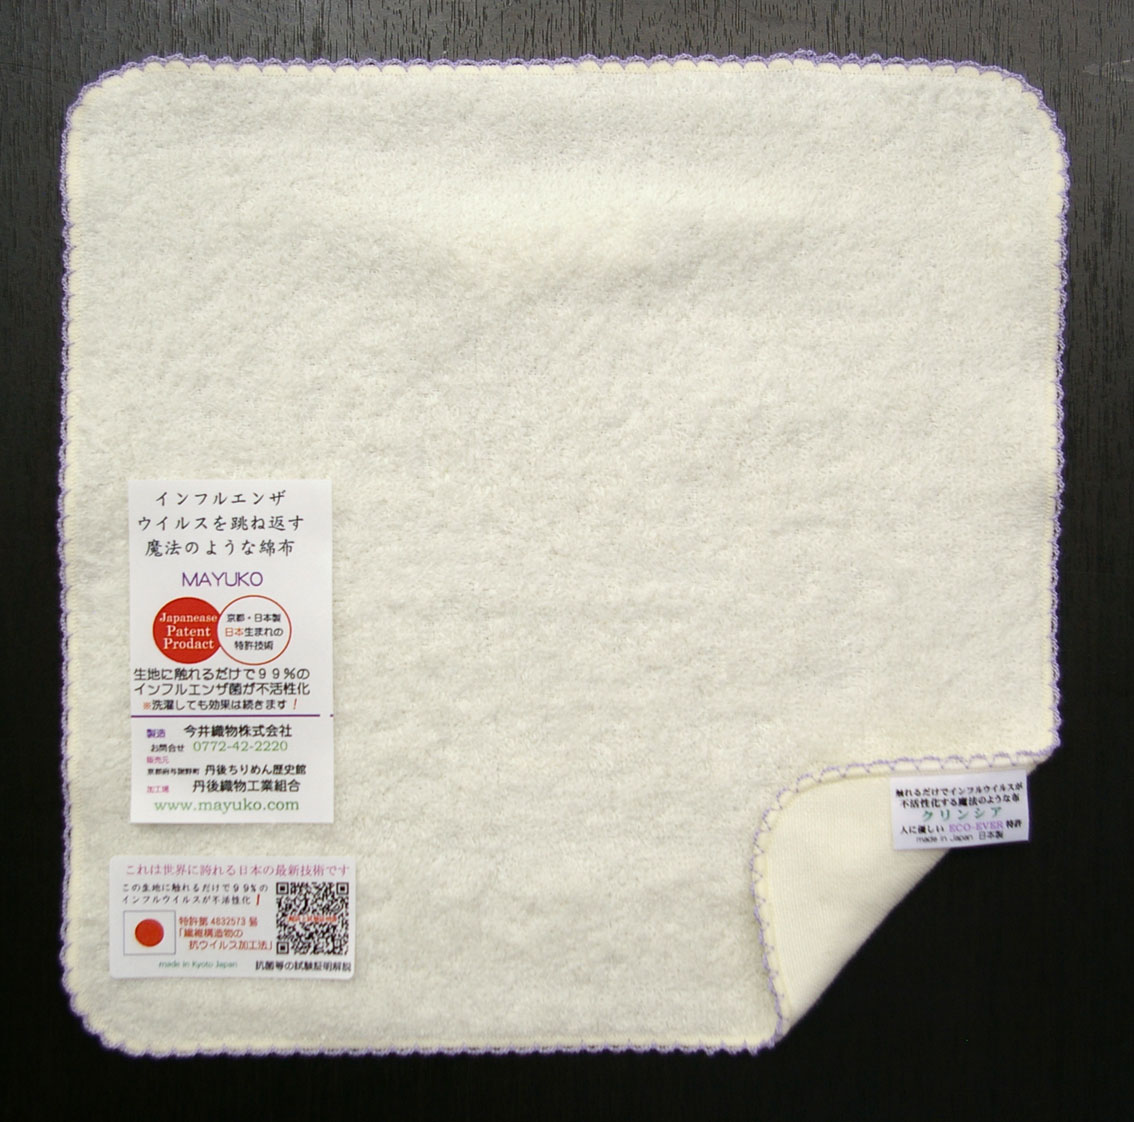 Bird flu virus inactivation of handkerchiefs wholesale 50 lots antibacterial deodorant pile •content cotton like magic 25 cm x 25 cm / virus attack! Unisex / made in Japan / MSRP pricing, tax ¥ 700